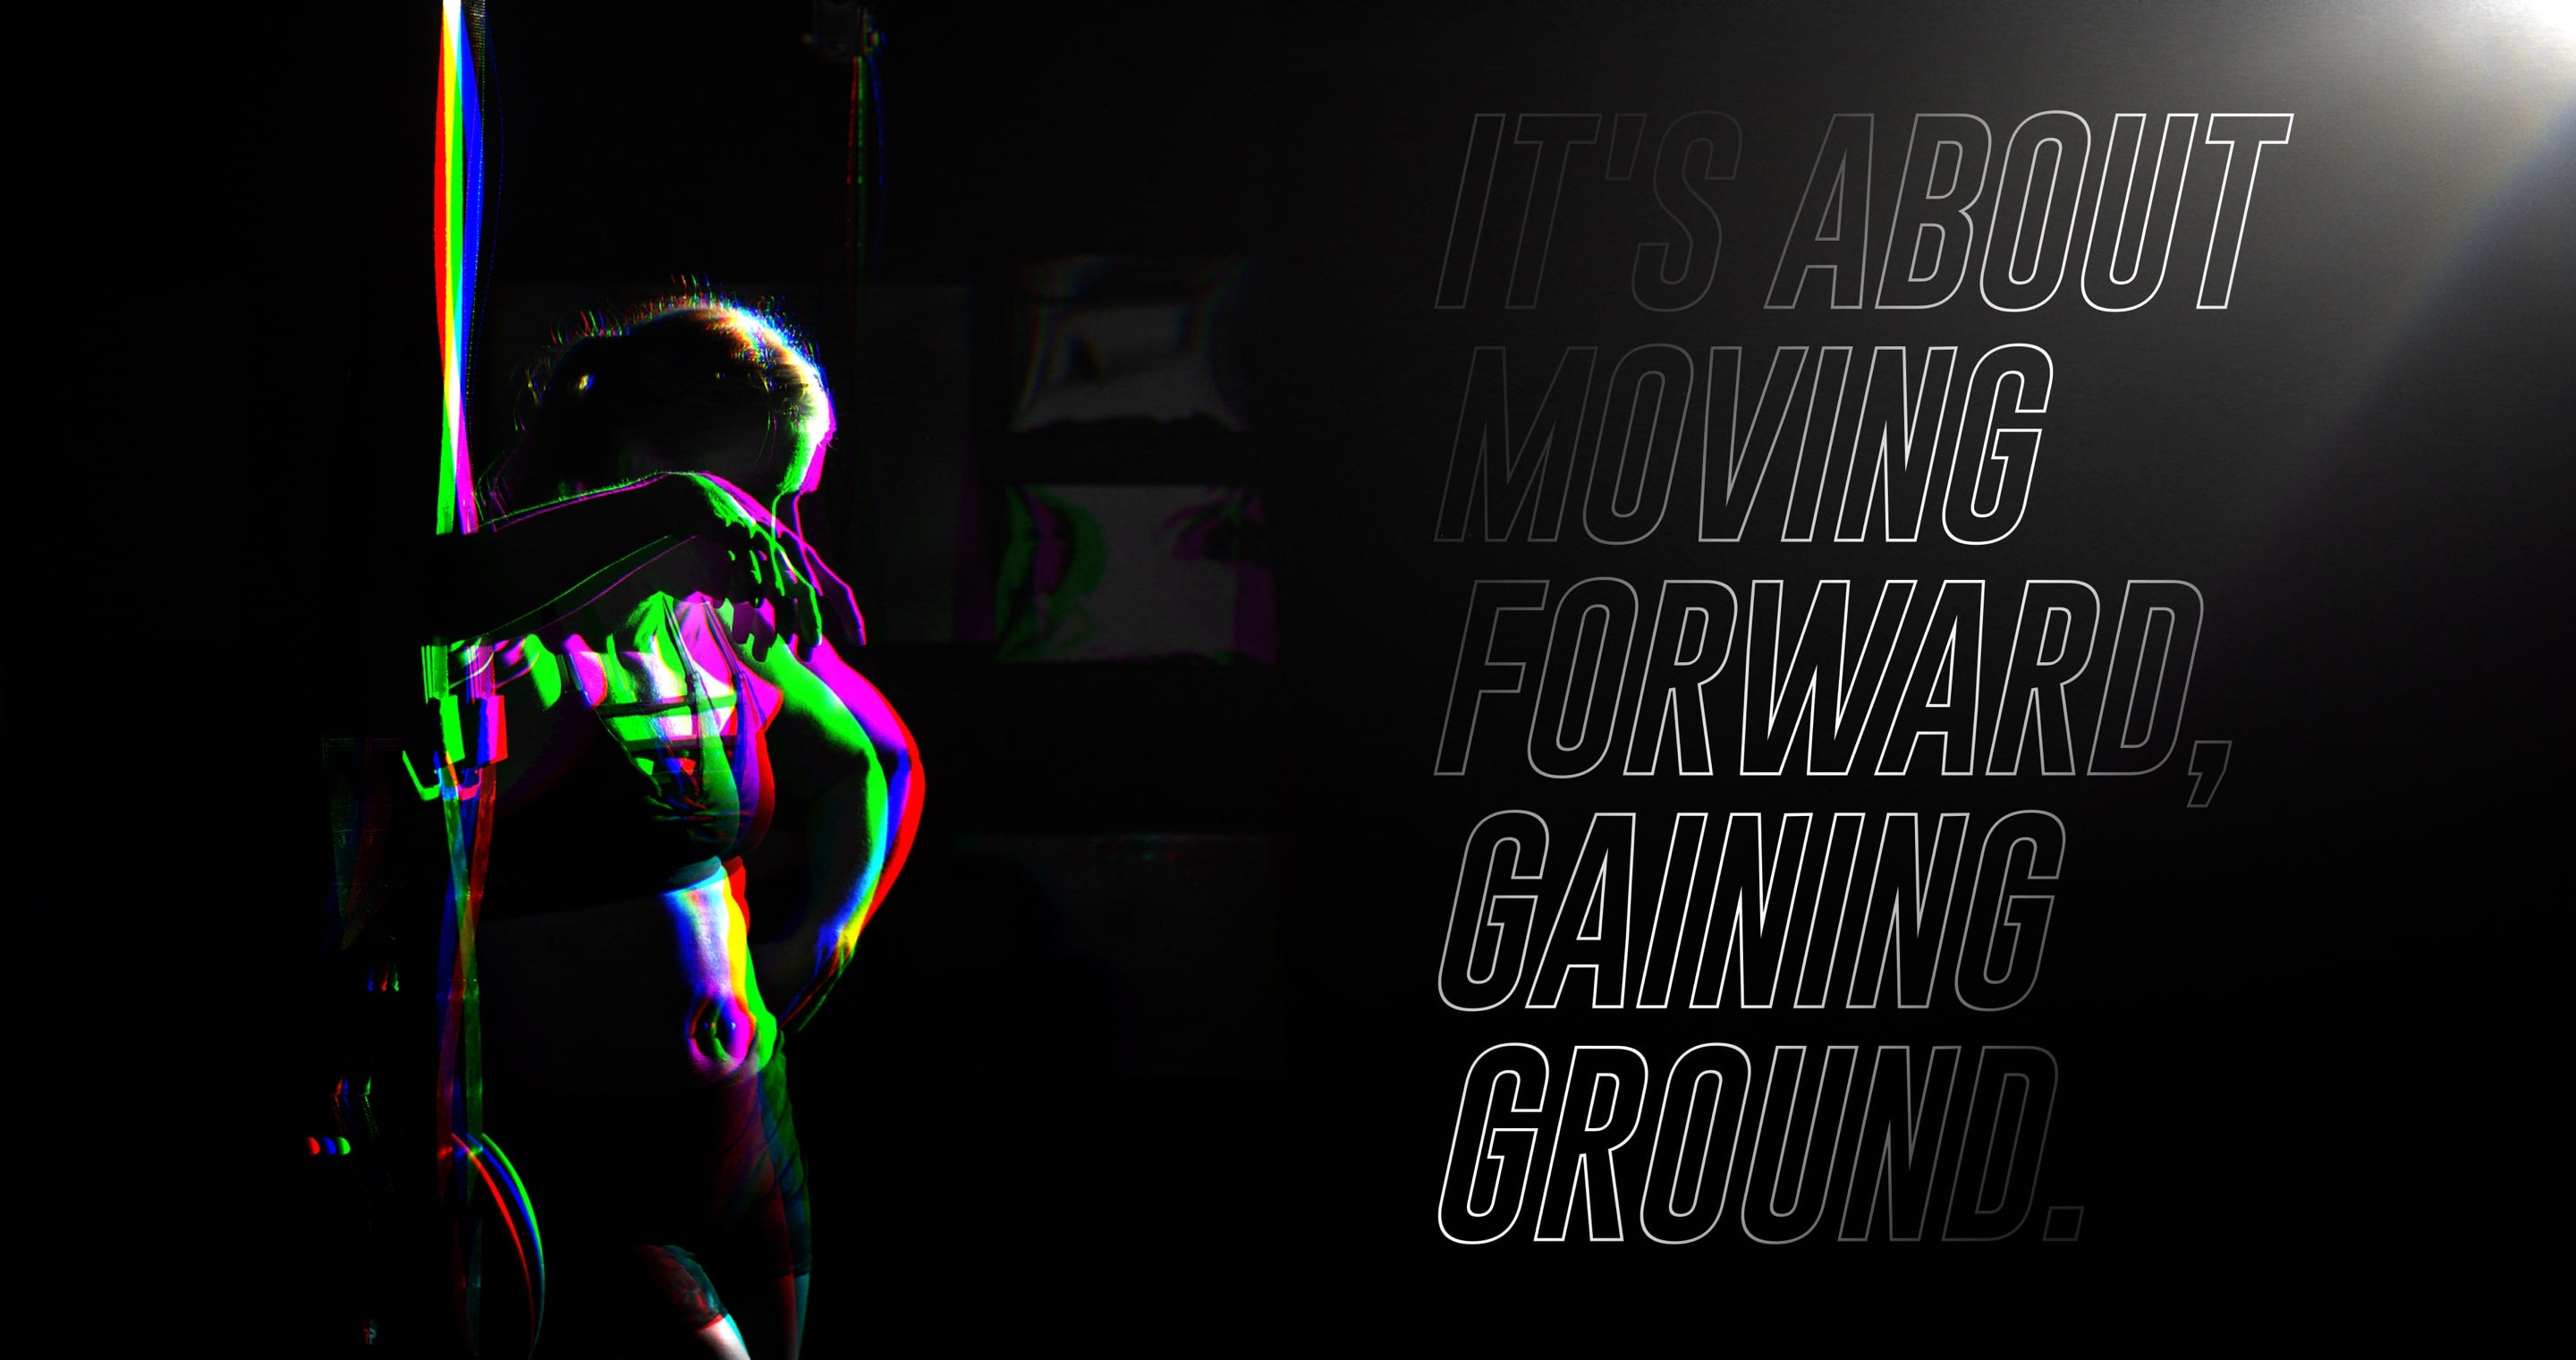 It's about moving forward, gaining ground.